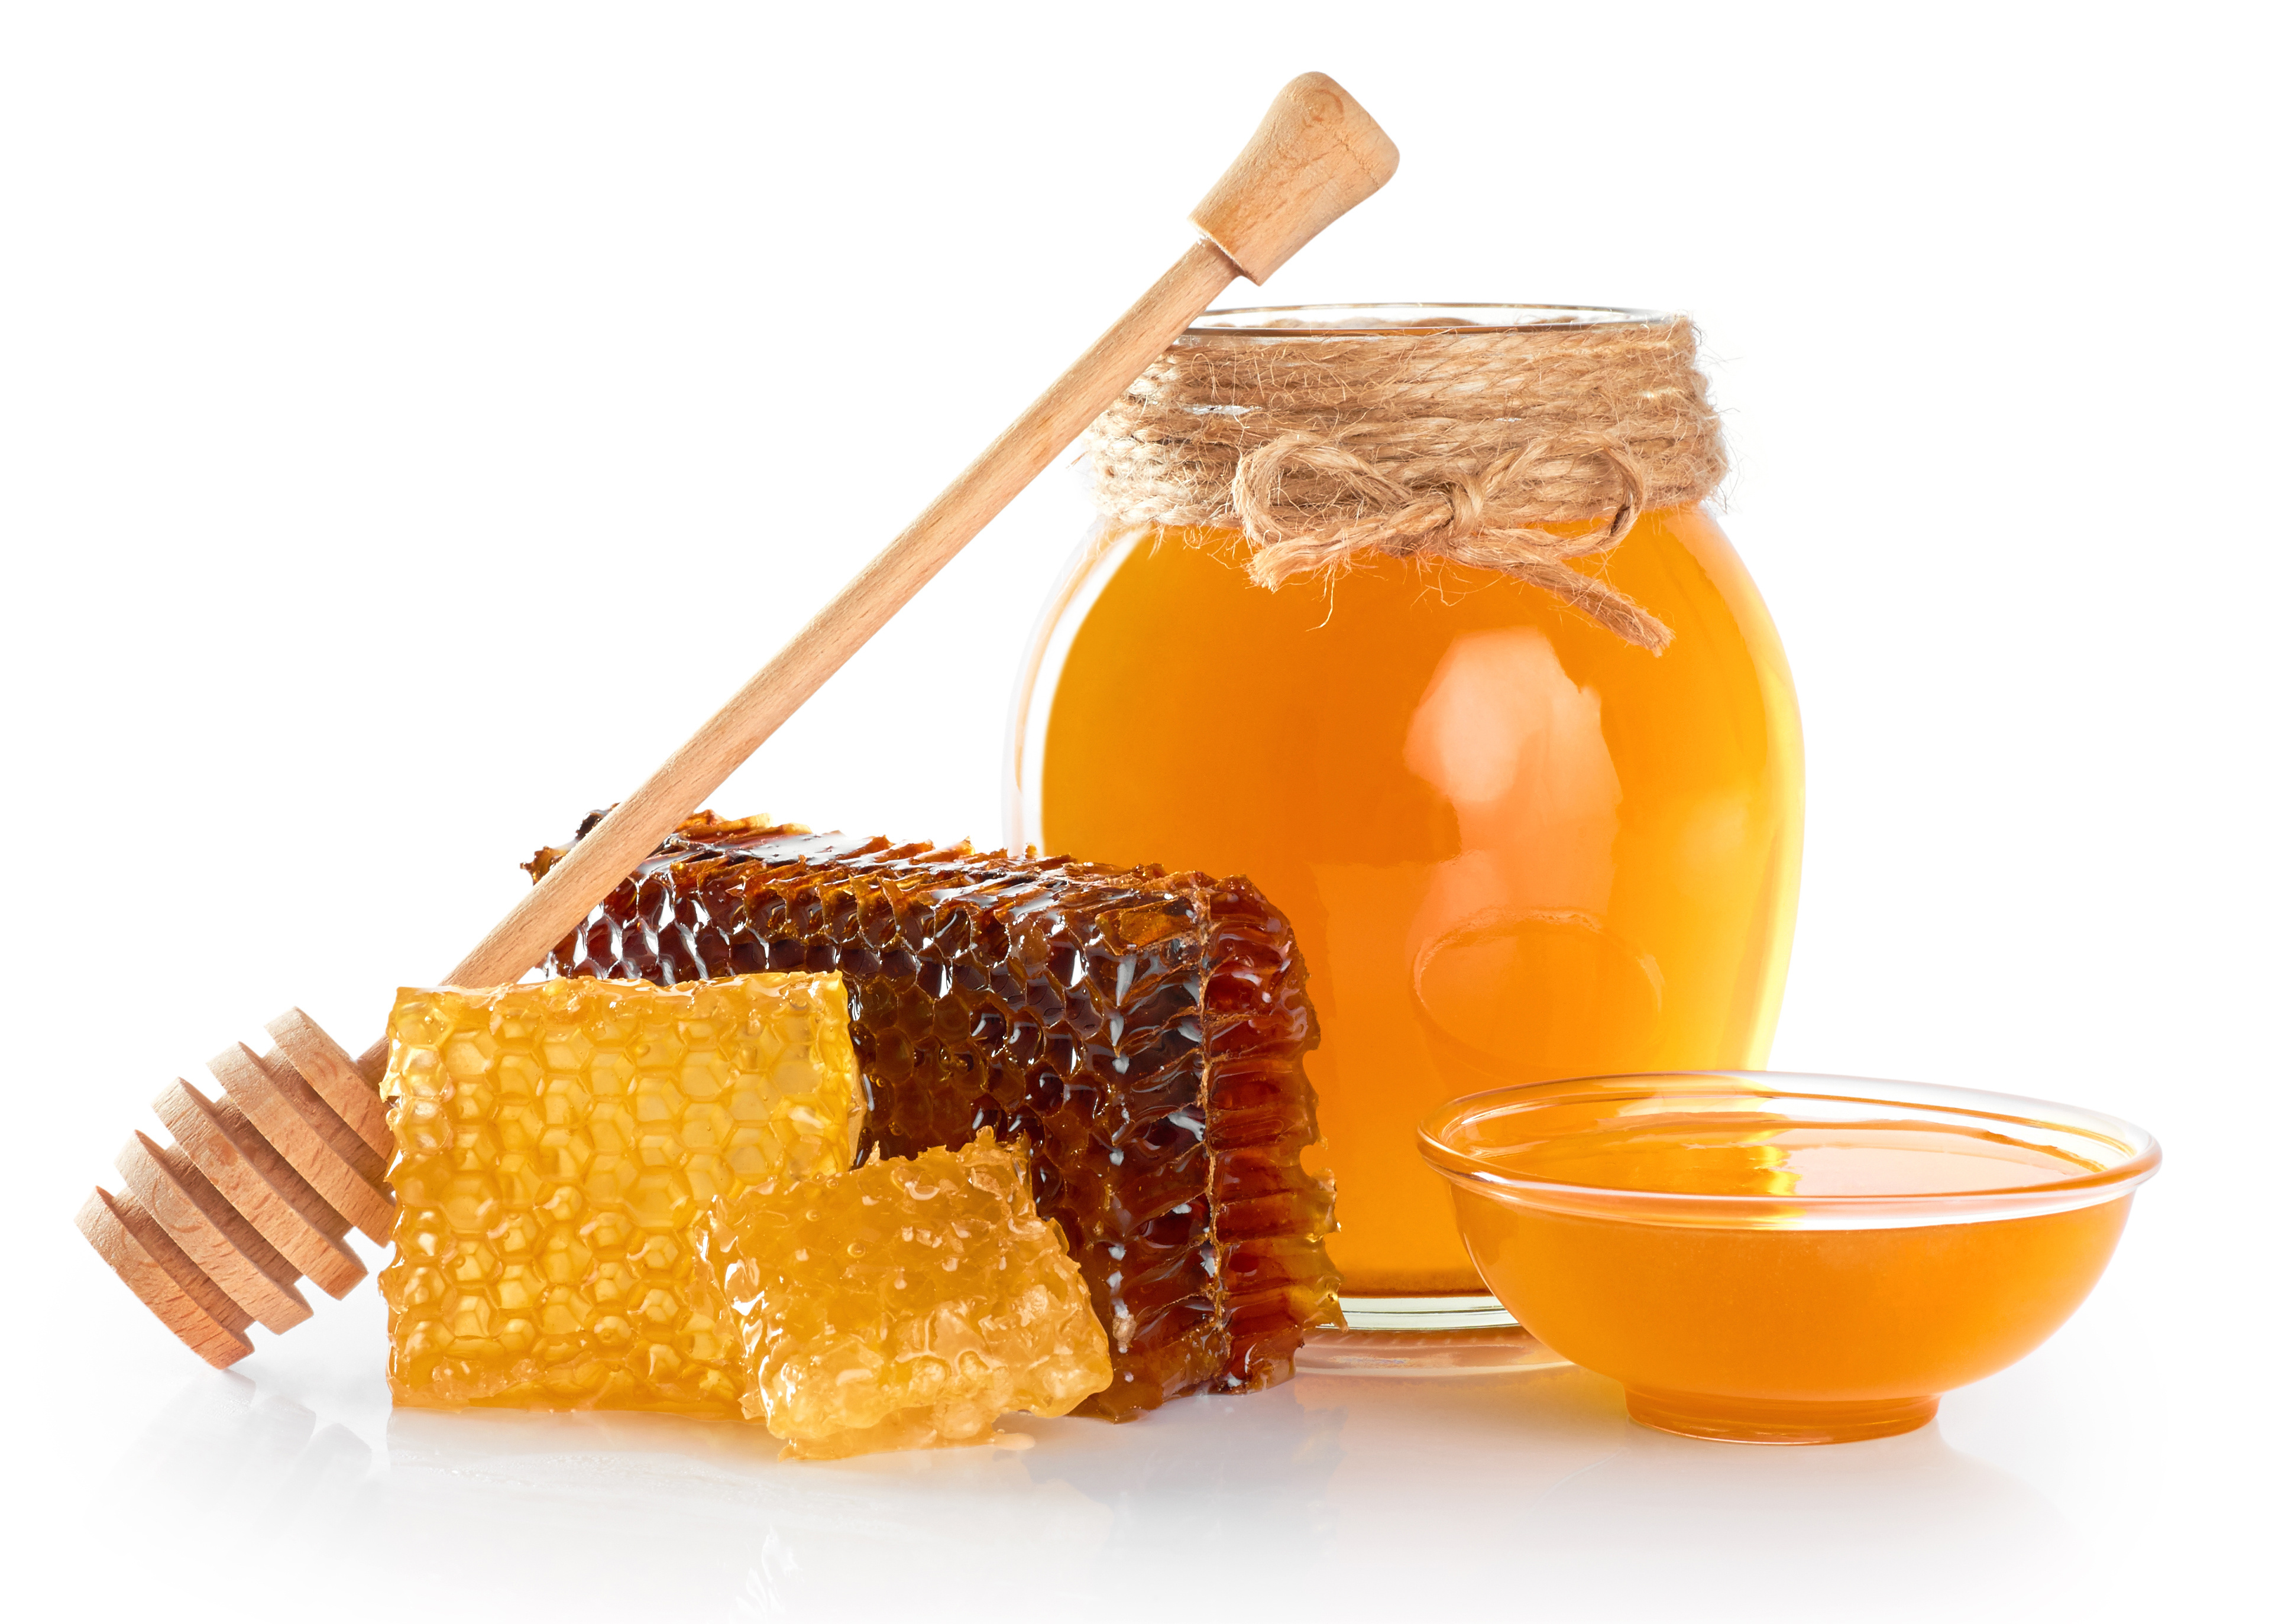 Fresh honey with honeycomb isolated on white background. Honey dipper.